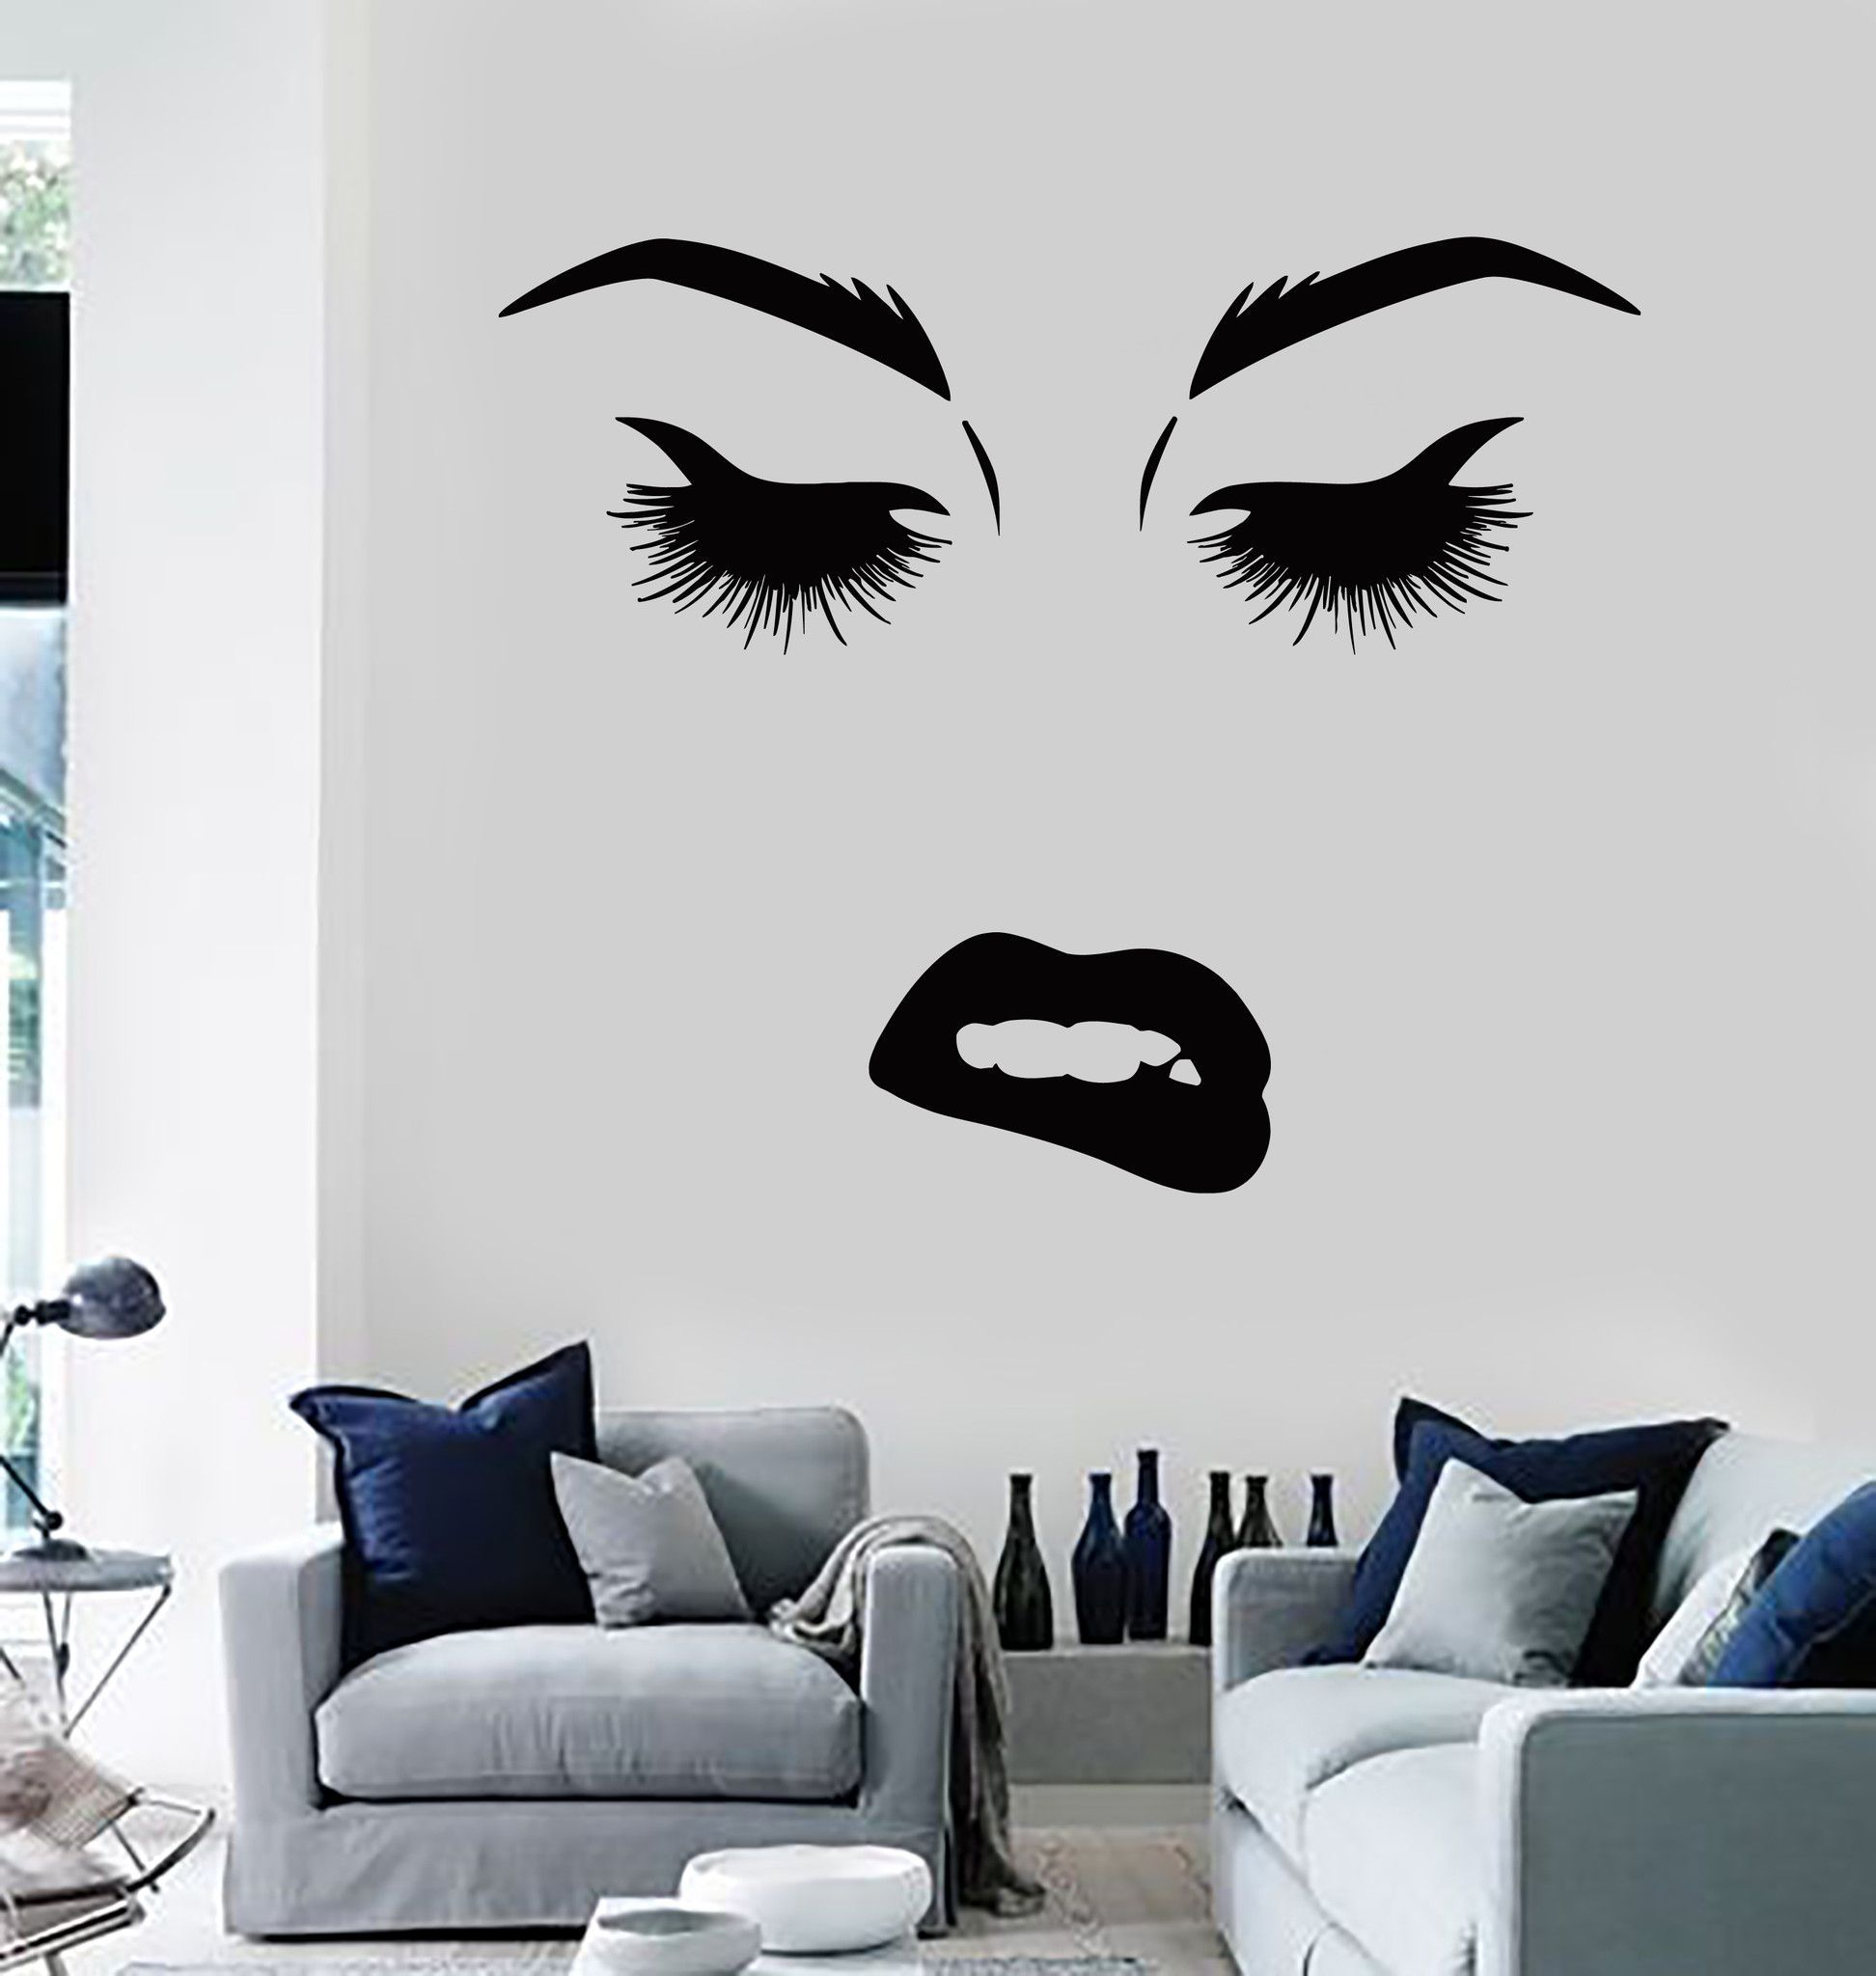 Vinyl wall decal beauty woman face eyes lips lashes stickers vinyl wall decal beauty woman face eyes lips lashes stickers murals ig4690 amipublicfo Images